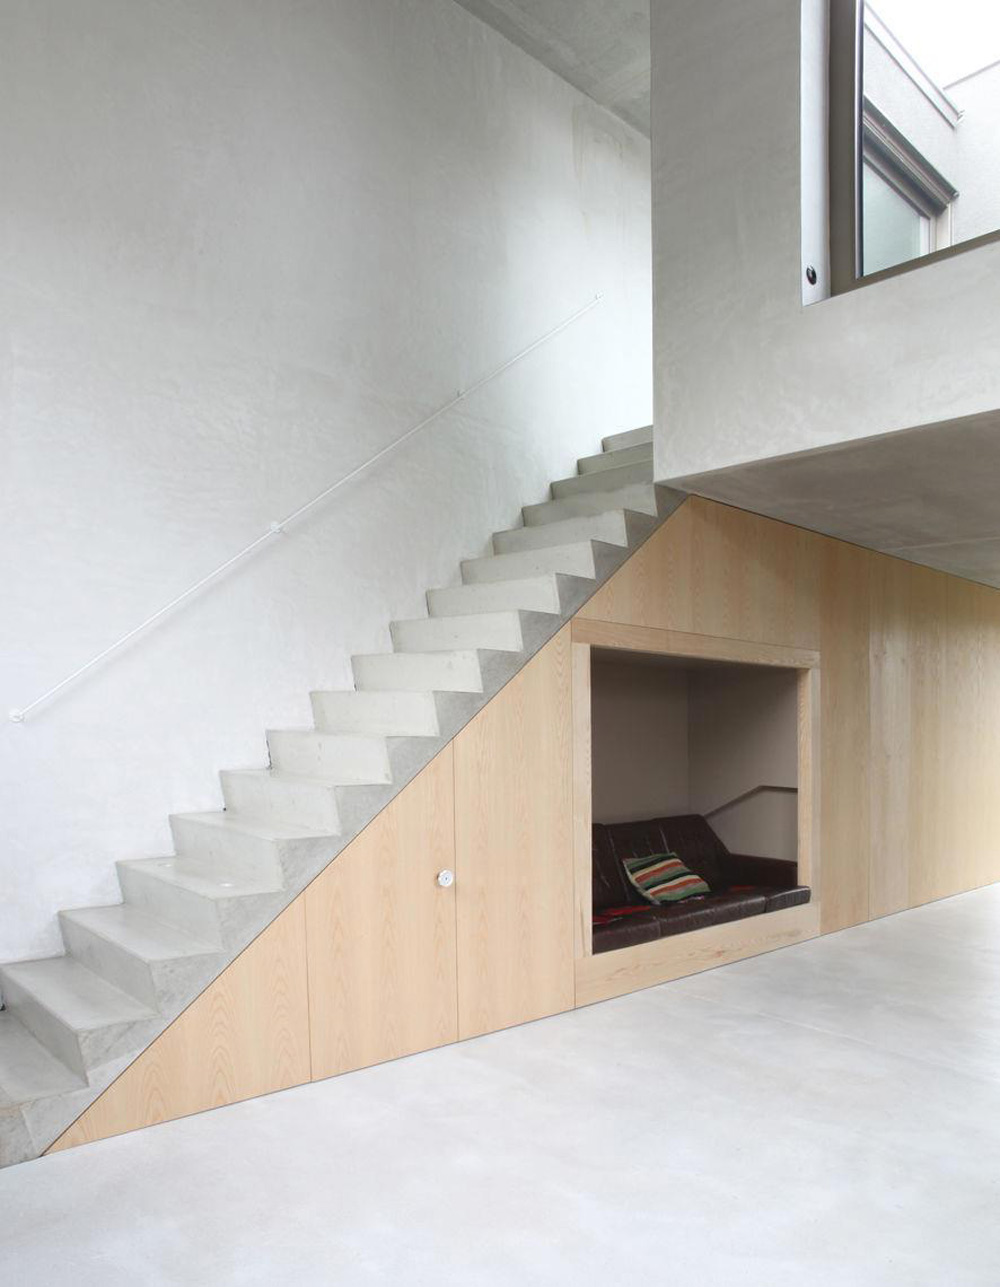 The staircase is located in the same position in each house; some owners have retained the concrete wall and ceiling finishes, other have plastered the walls and painted them